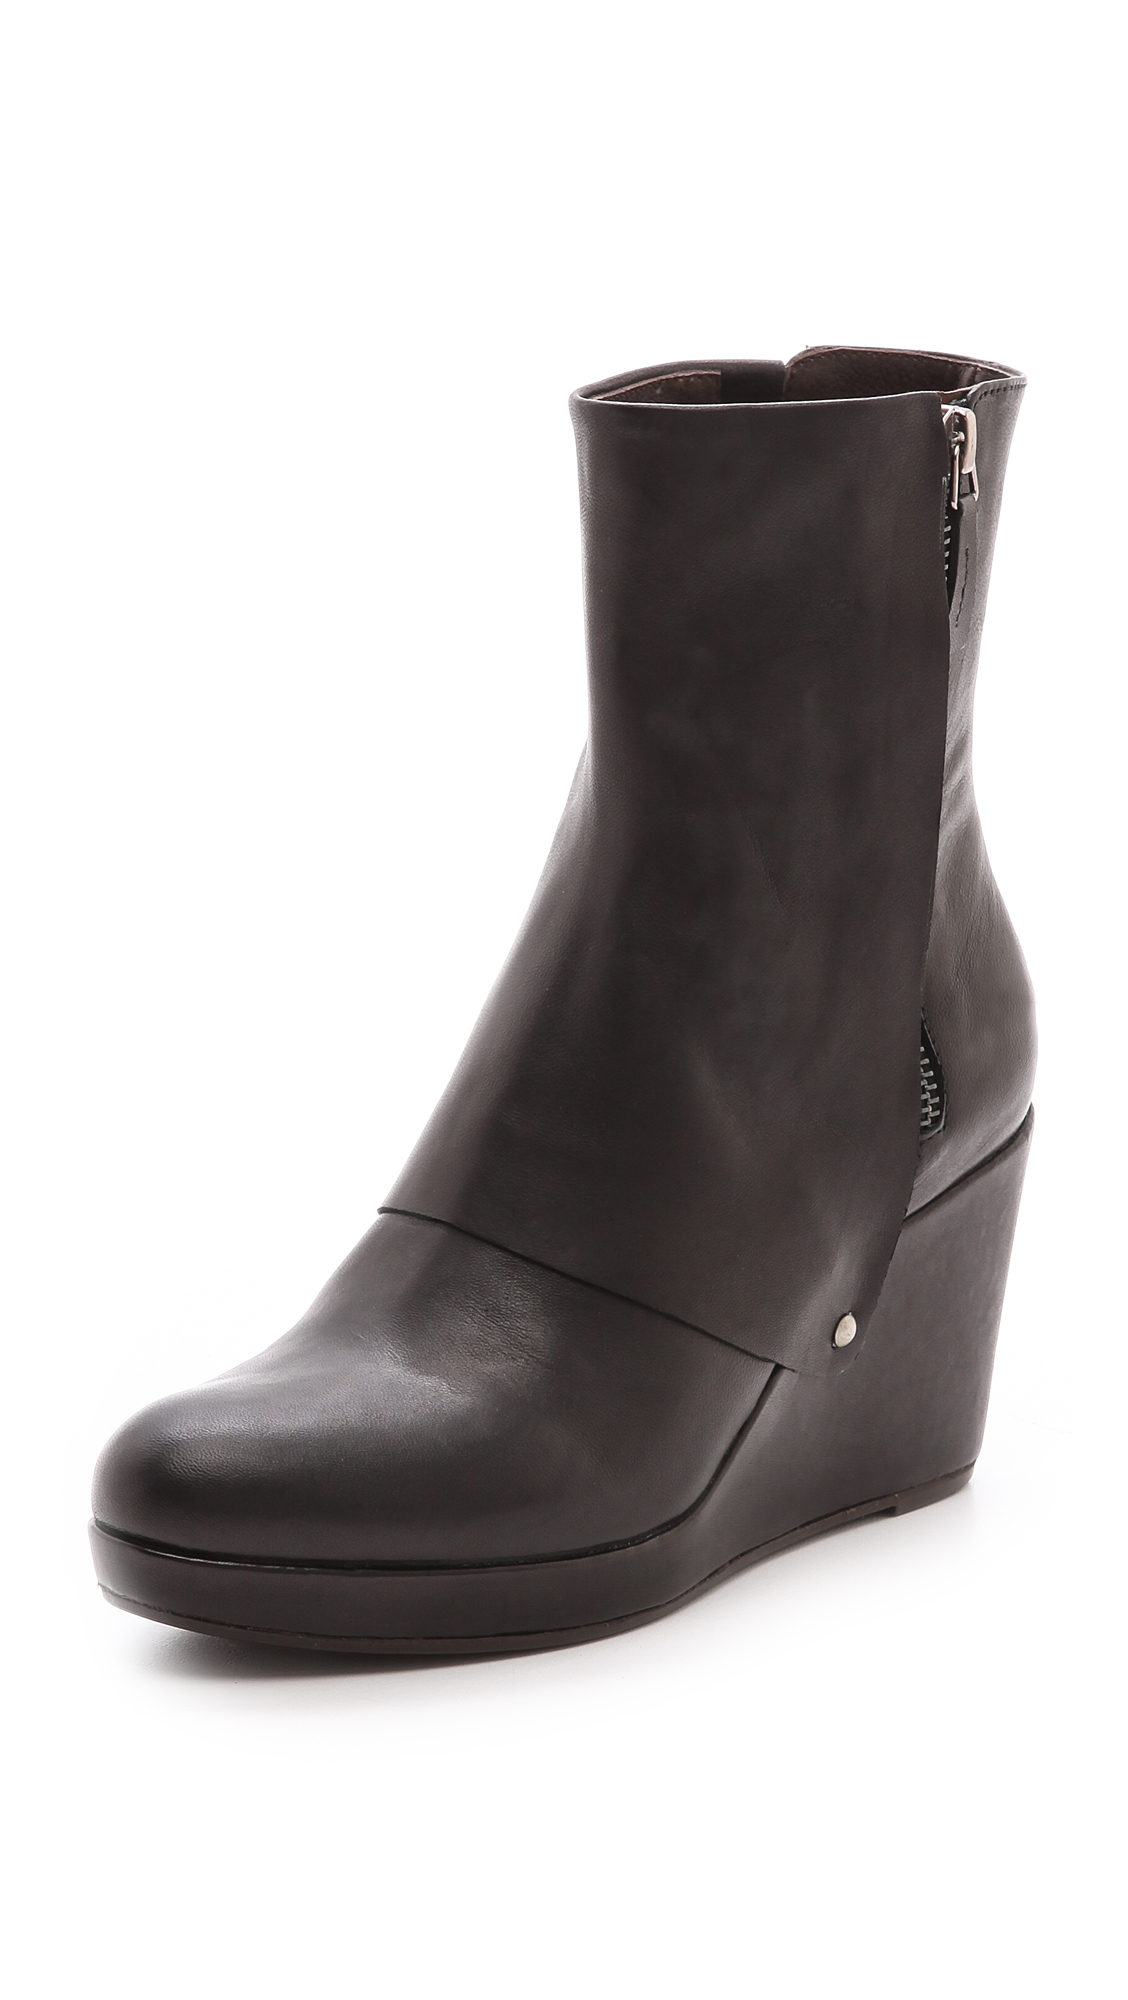 Coclico Huette Wedge Booties Black In Black Lyst